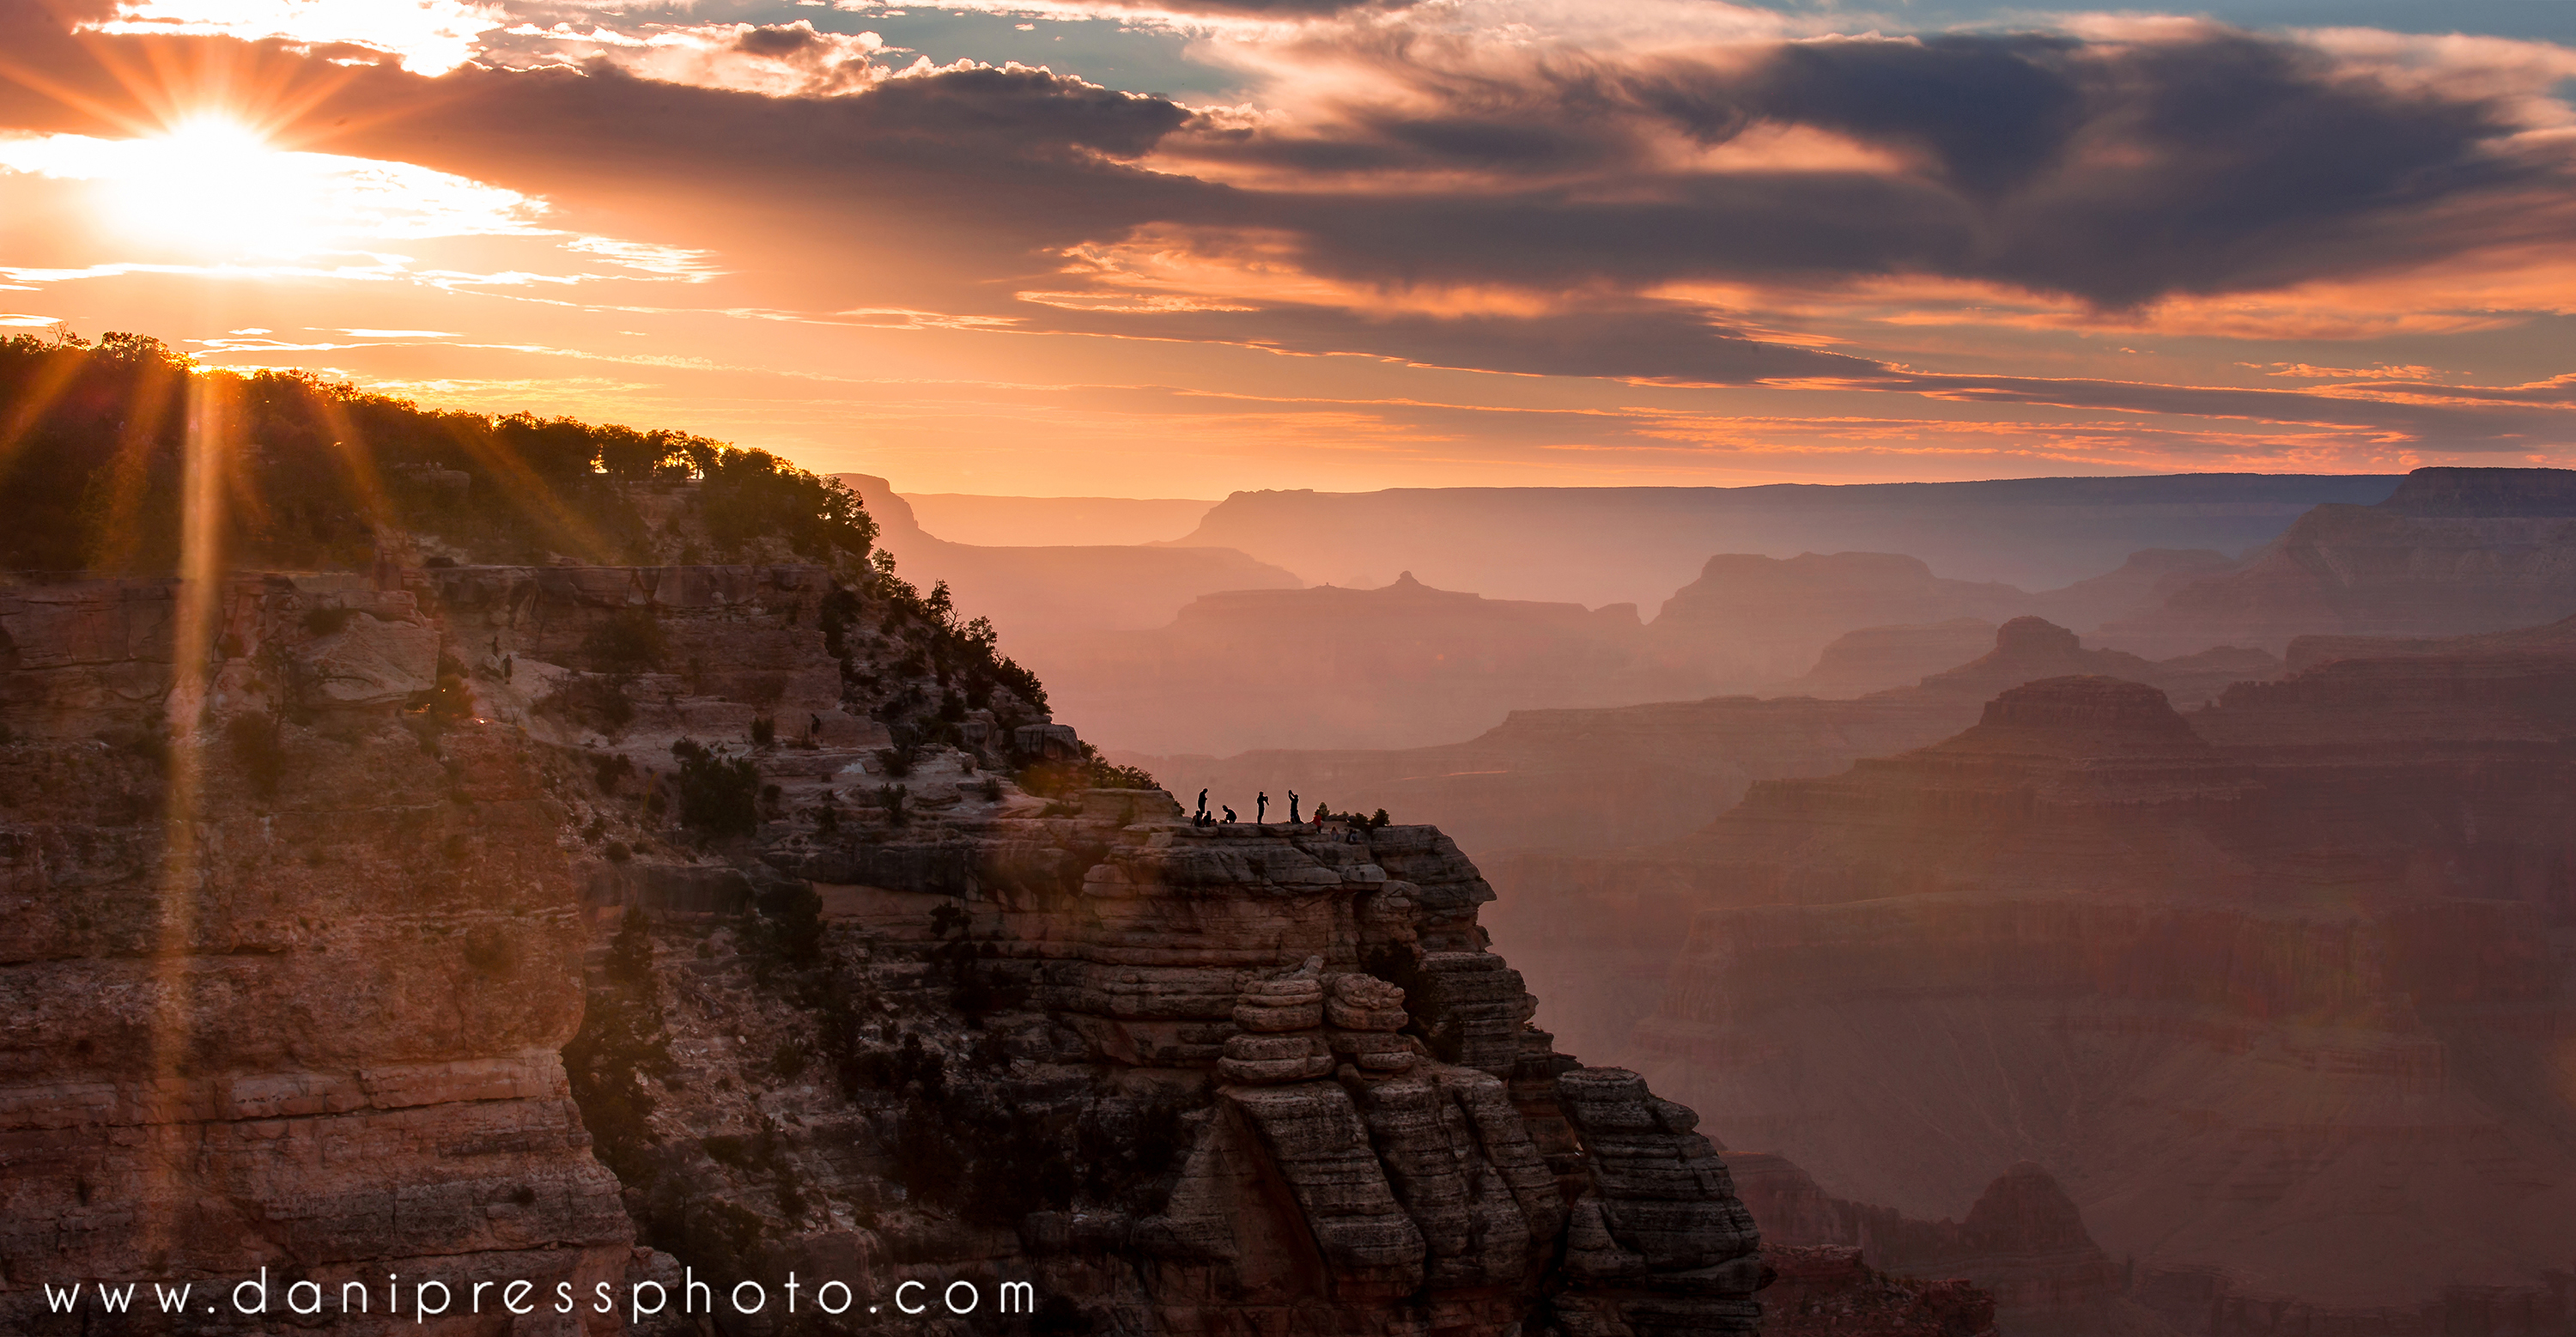 Grand Canyon Sunset photographers afterglow arizona travel famous places scenic danielle w lundberg danipress photography.jpg